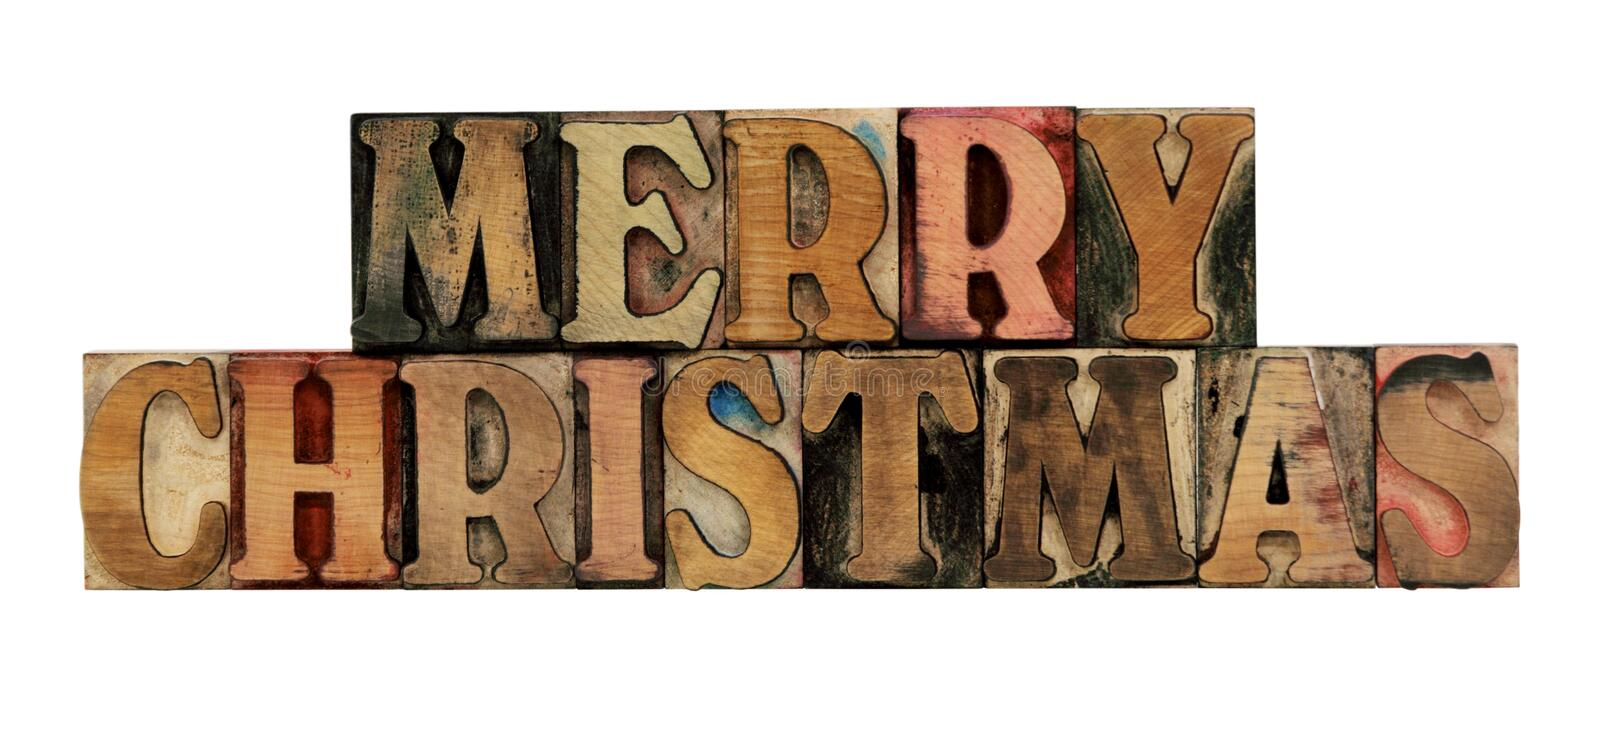 Download Merry Christmas In Letterpress Wood Type Stock Photo - Image: 3770832